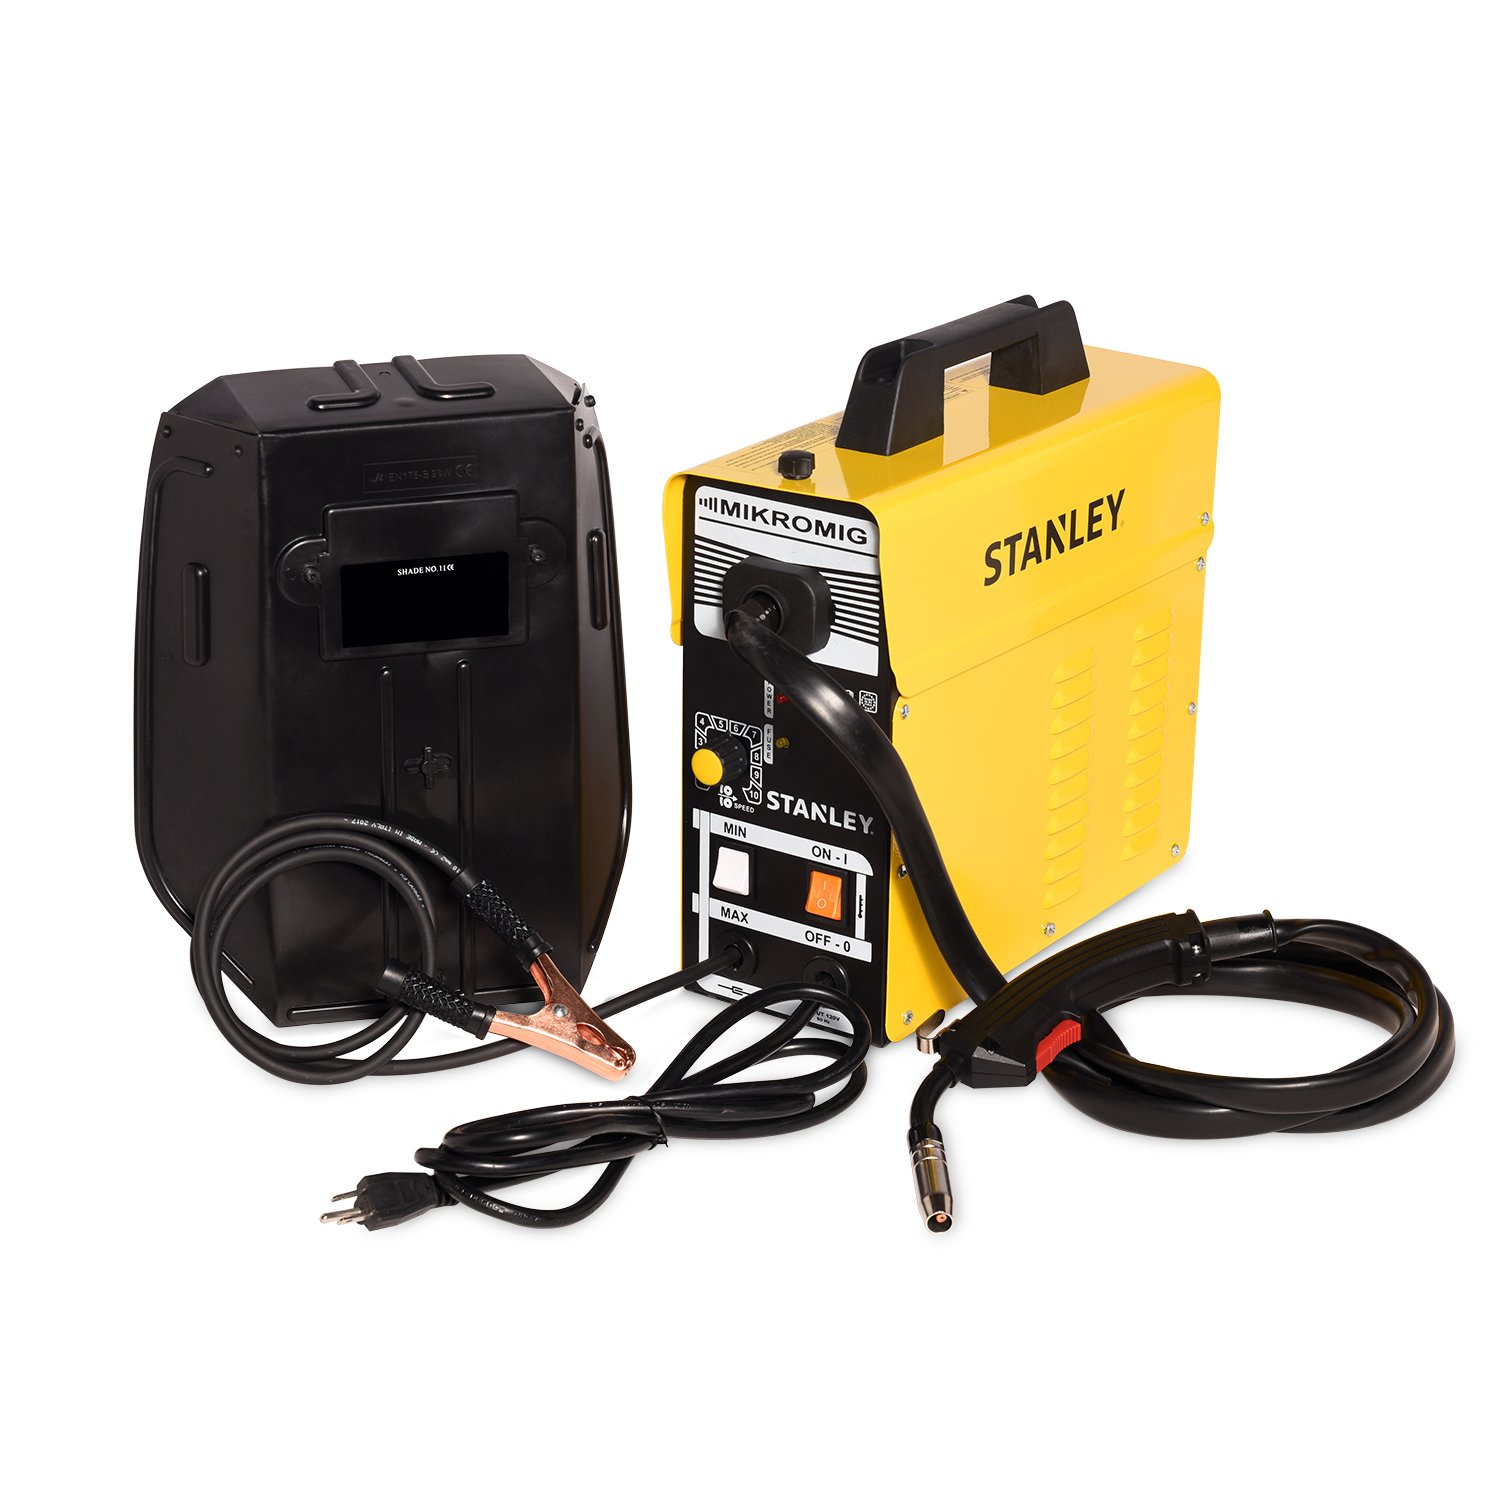 "Stanley 120V MIKROMIG Welding Machine – Portable 80-Amp Flux-Cored Mild Steel Welder for Home & Professional Use – 14.4"" x 5.5"" x 14.2"" by Stanley"